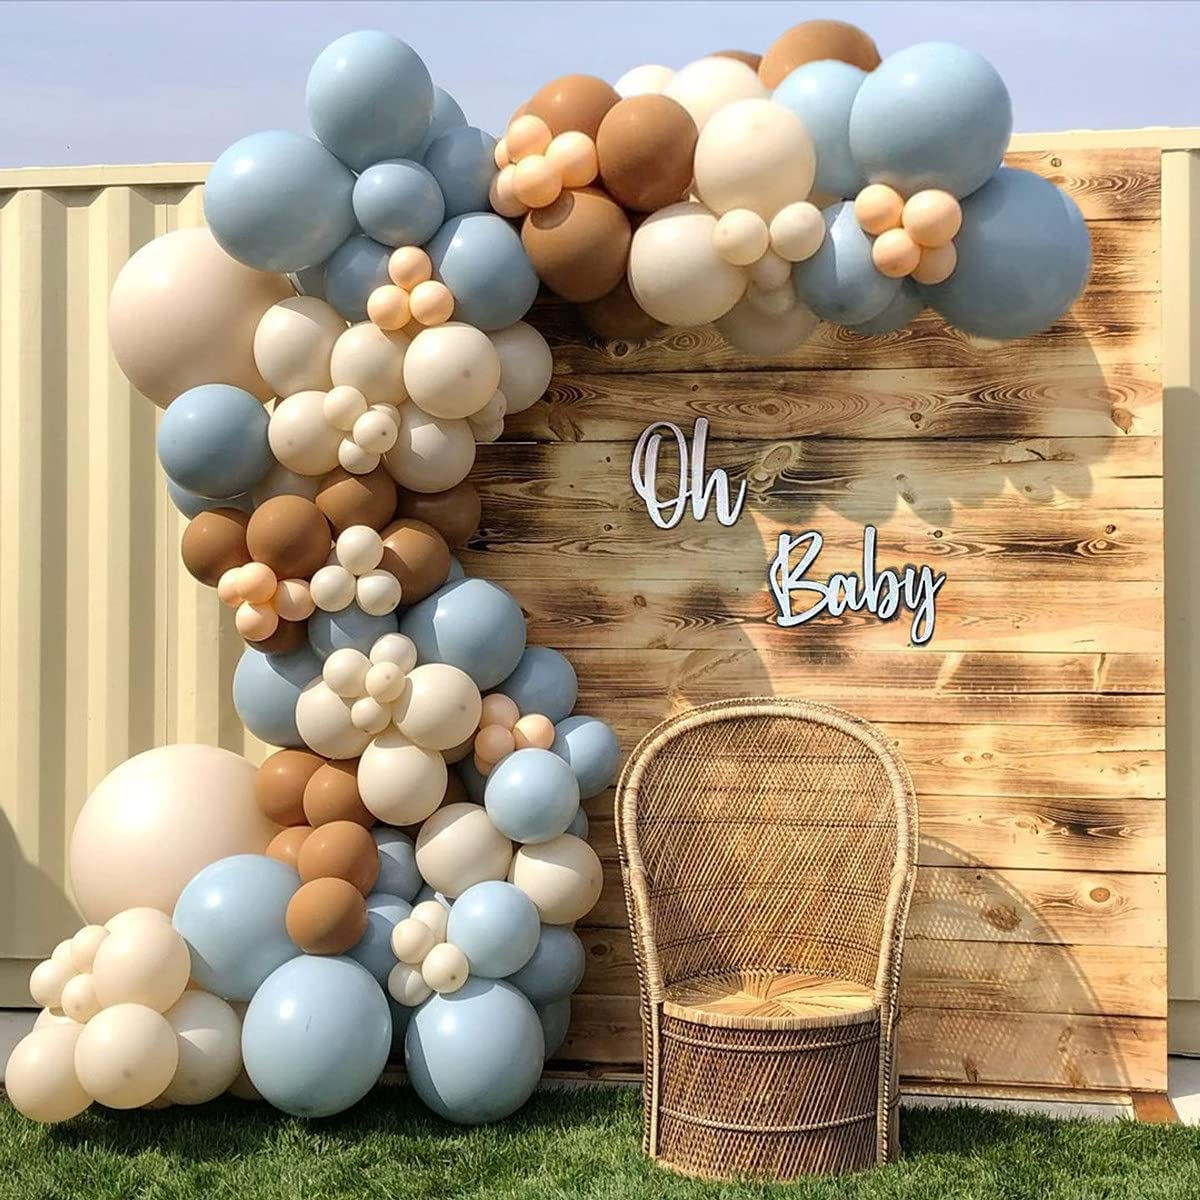 140Pieces Brown Nude Blue Ivory White Balloons Balloon Garland Arch Kit, Jungle Safari Wild One Teddy Bear Gender Reveal Baby Shower Birthday Theme Party Decorations Supplies for Boy Girl